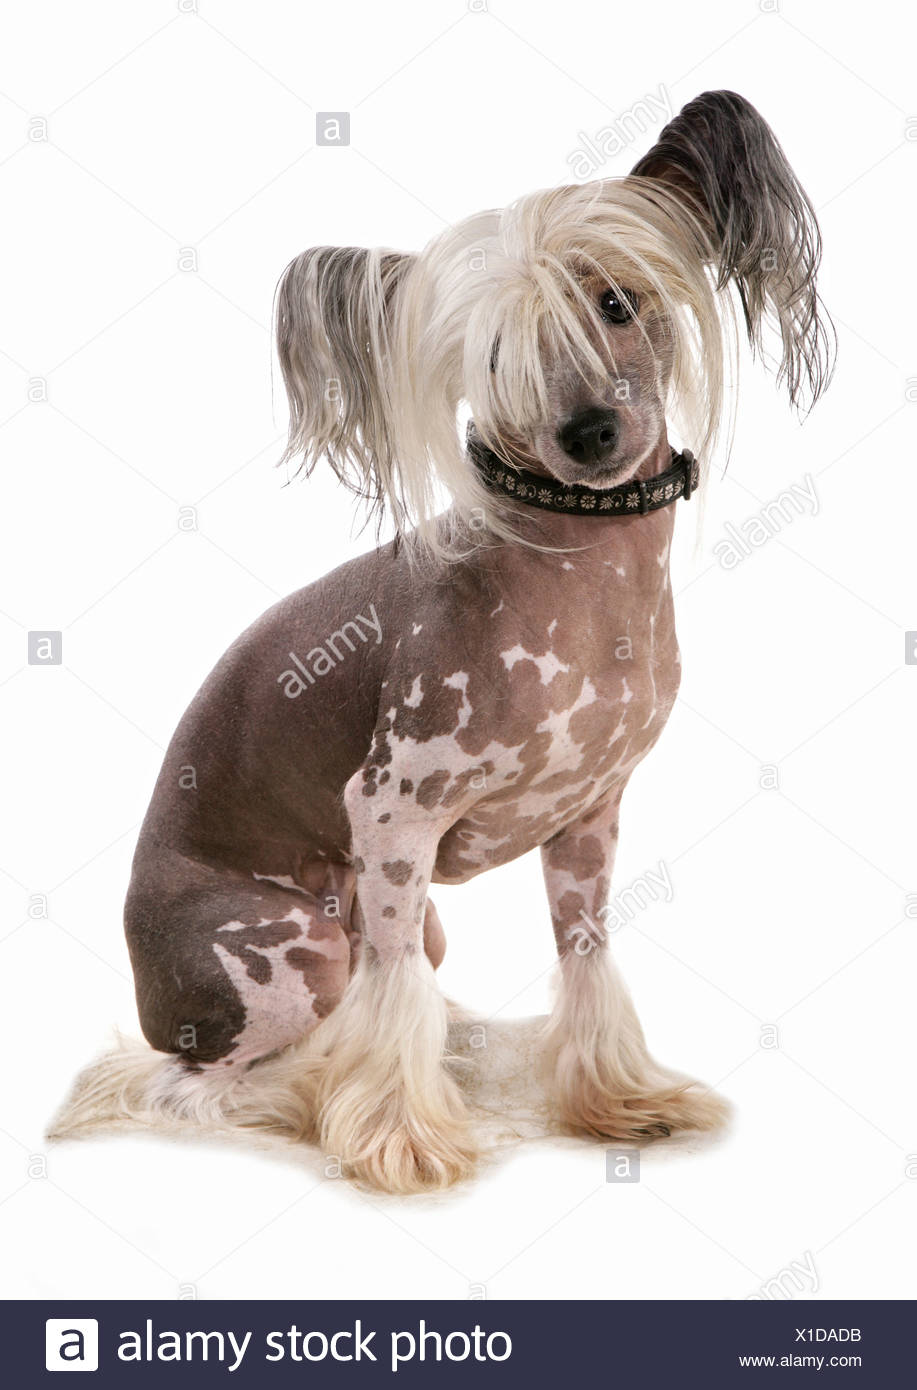 Chinese Crested dog - sitting - cut out - Stock Image